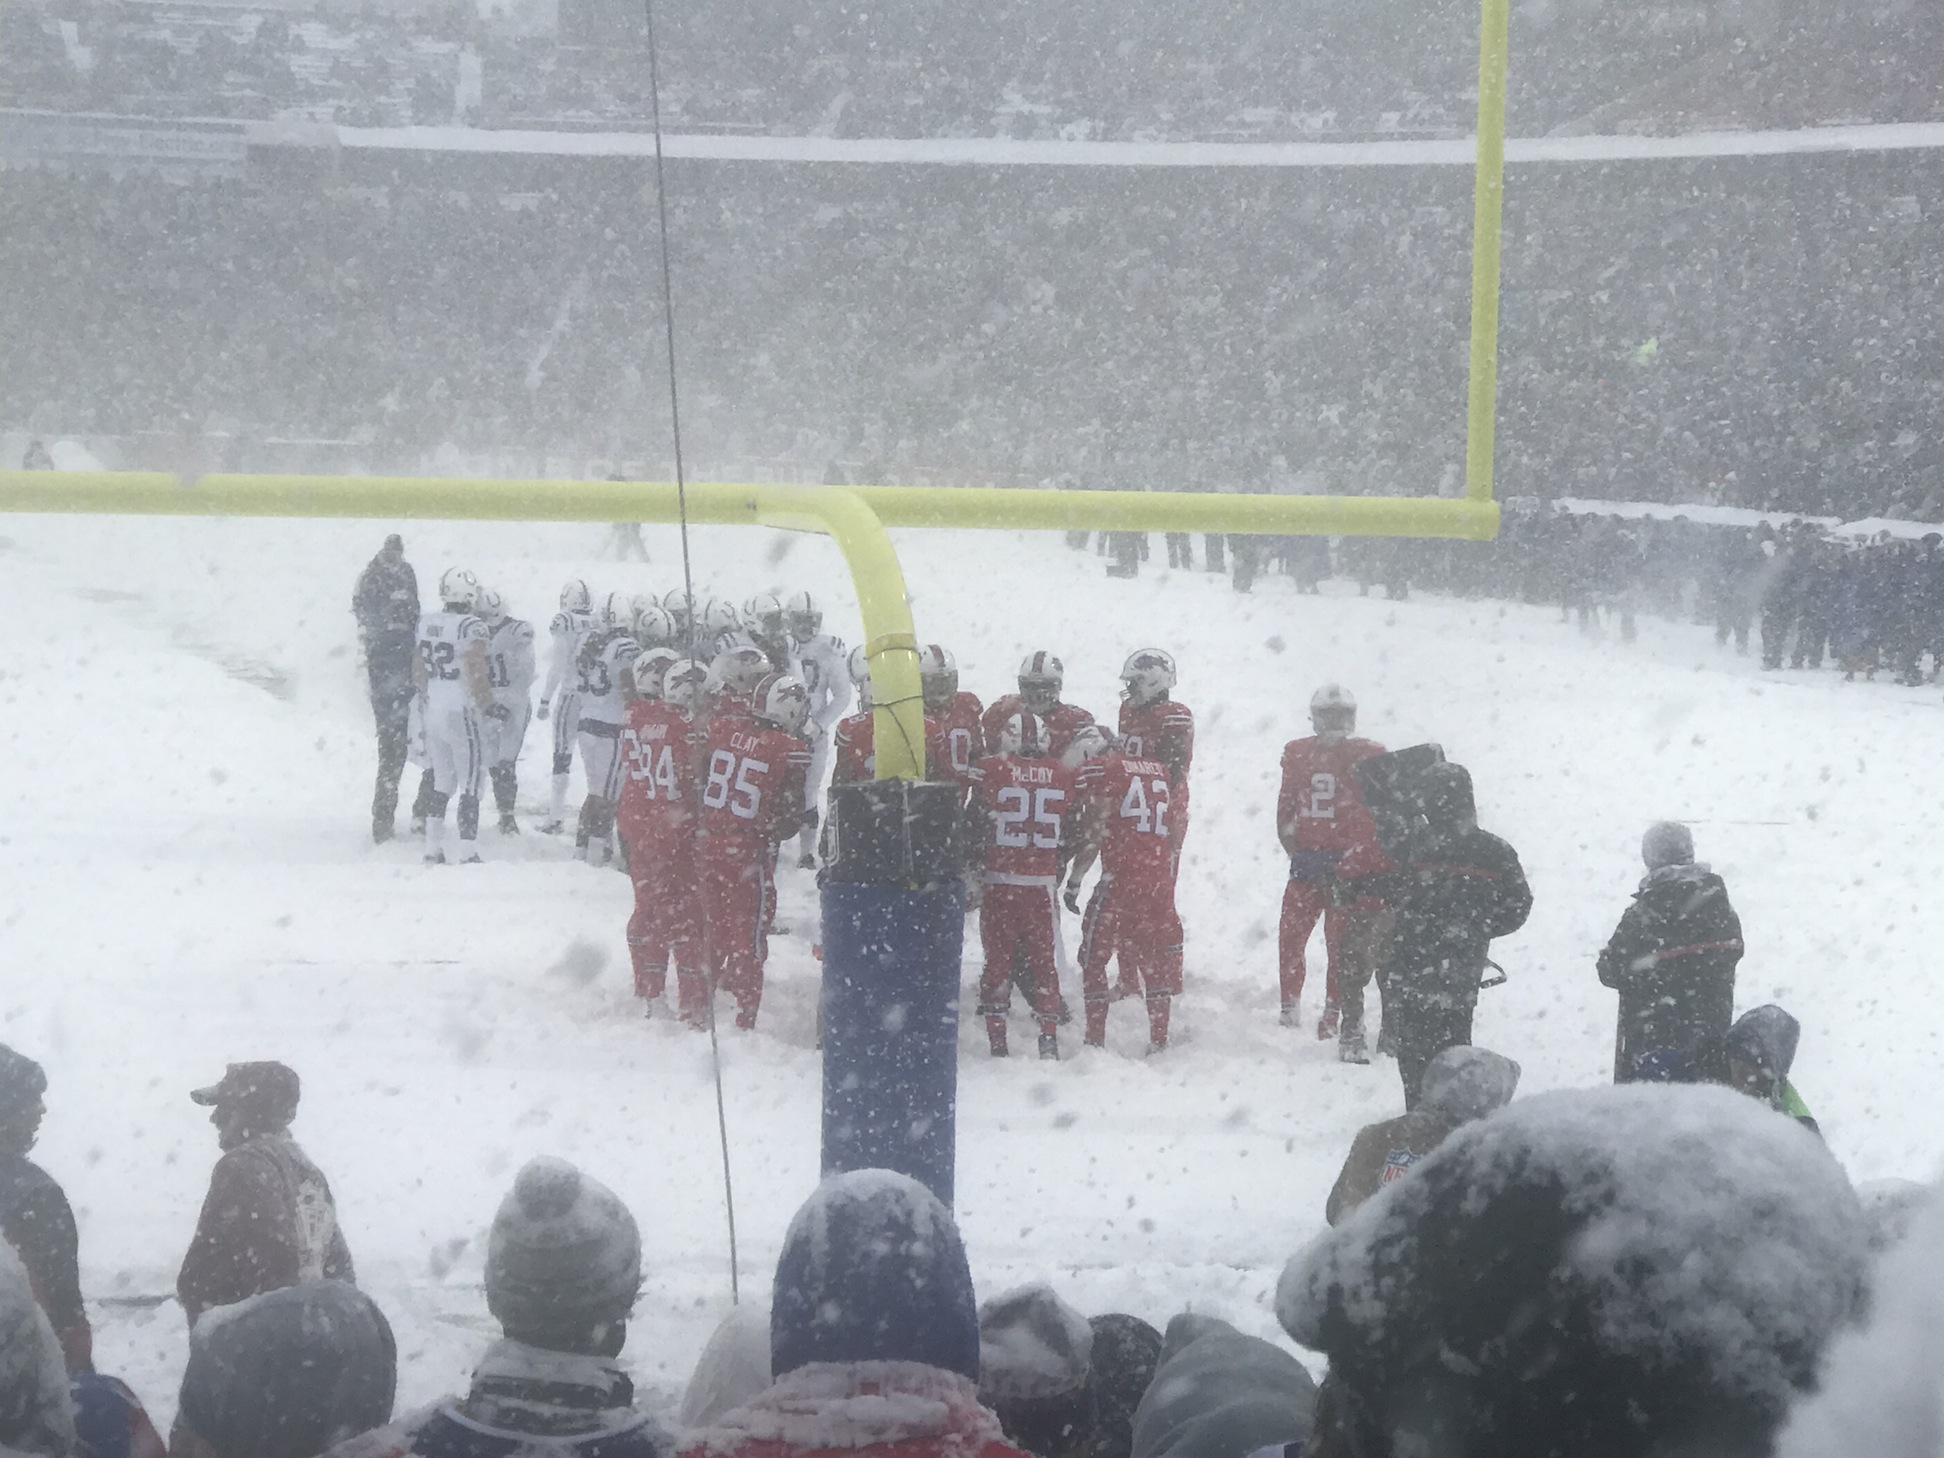 The Bills take the field on a snowy, blizzard like game versus the Indianapolis Colts on Dec. 10. The Bills won the game, 13-7, via a LeSean McCoy rushing touchdown in overtime.